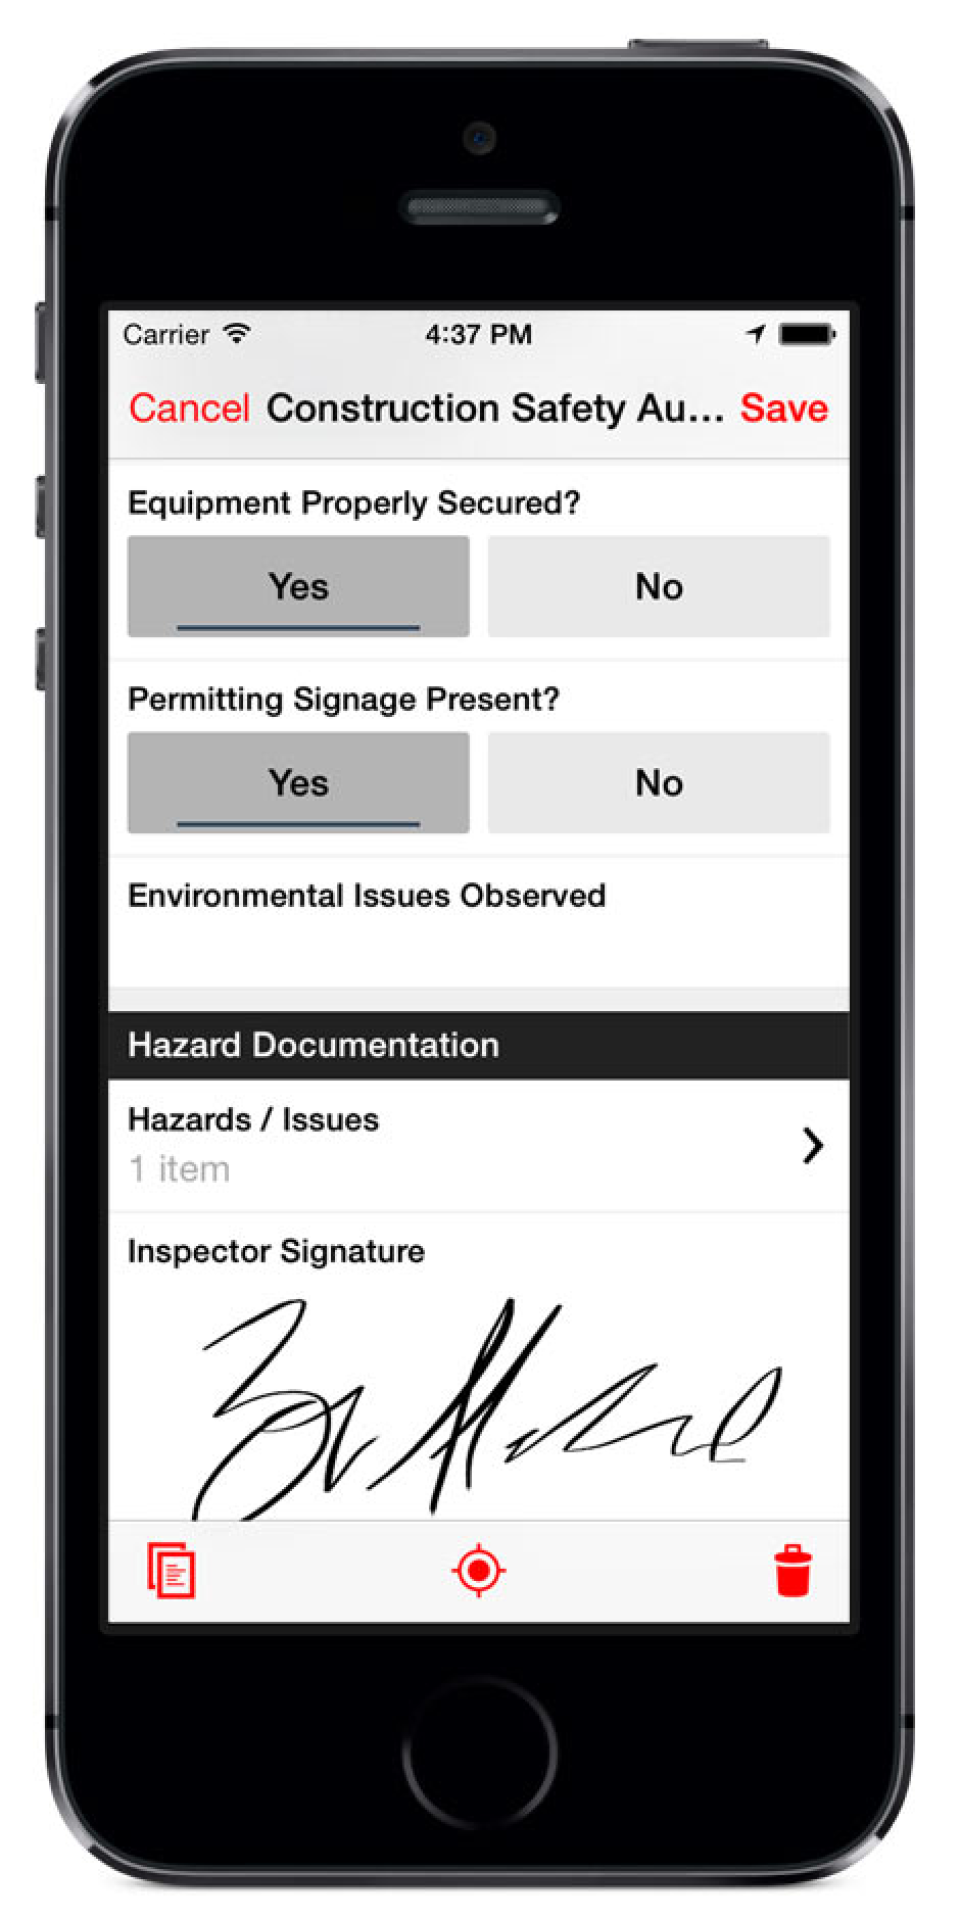 Signatures can be captured electronically through Fulcrum's native mobile apps